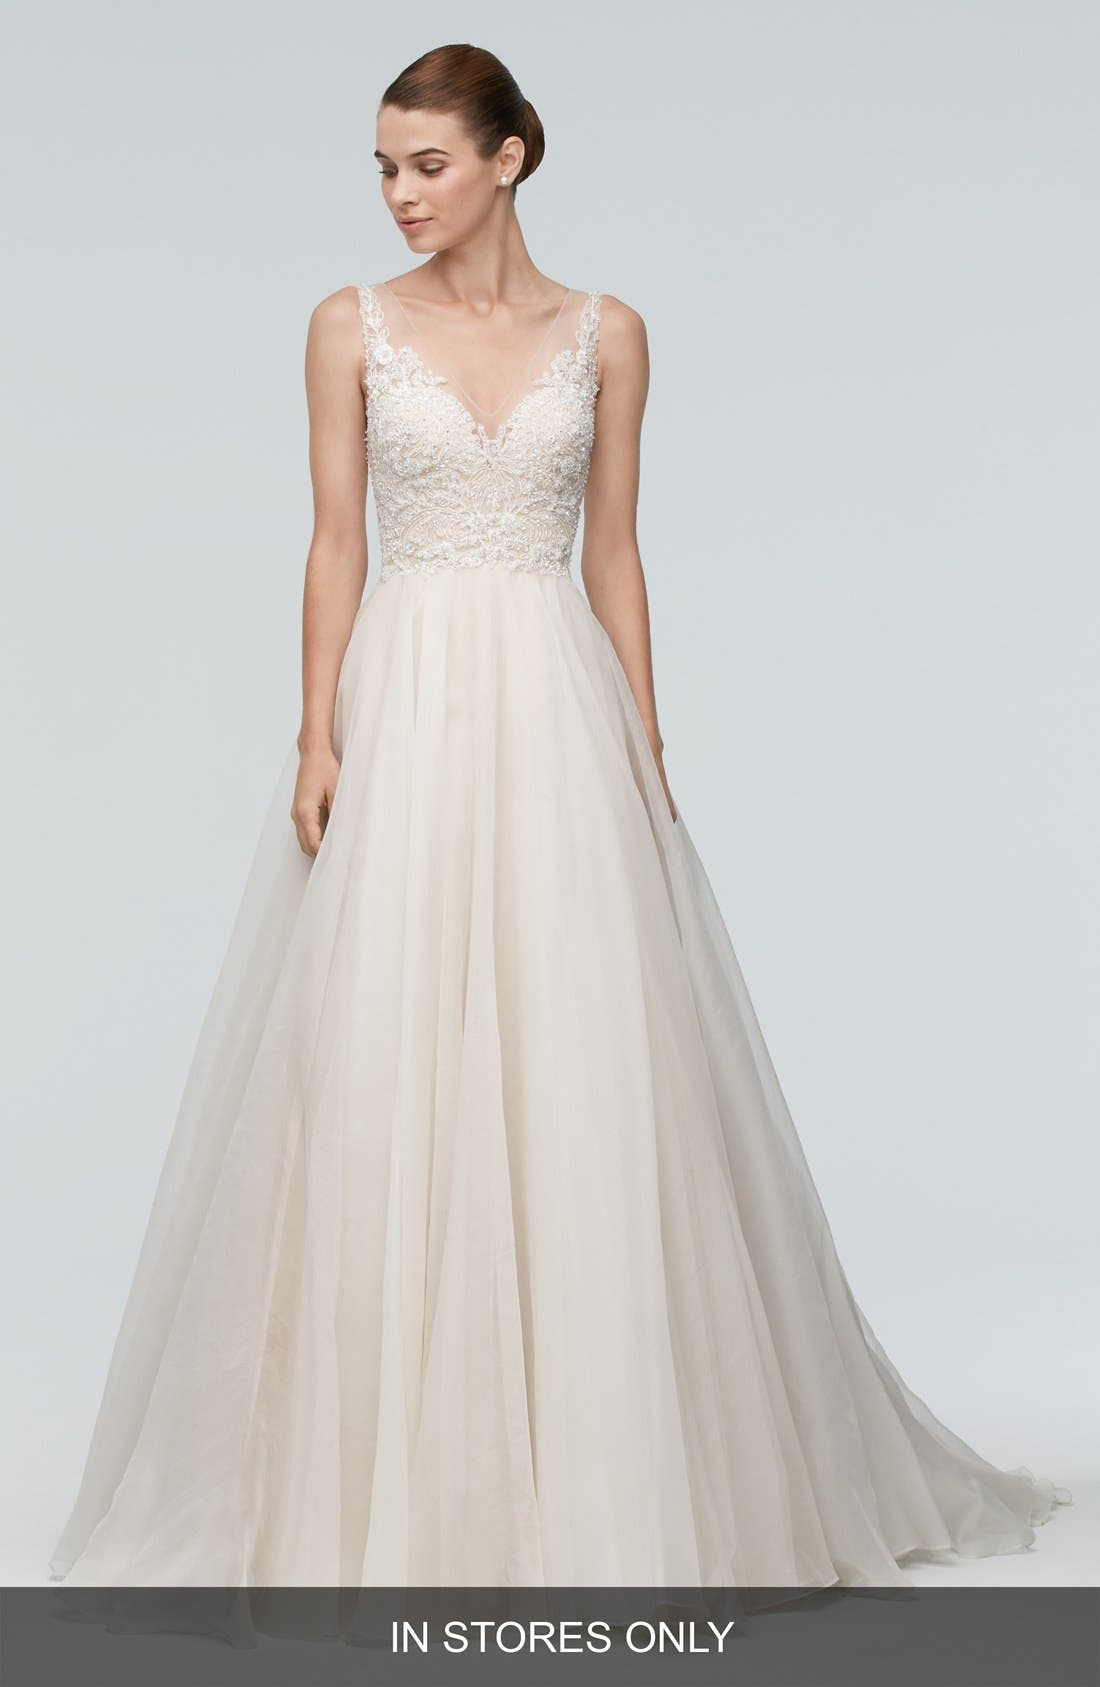 Janet Embellished Tulle & Organza A-Line Gown,                             Main thumbnail 1, color,                             IVORY/NUDE